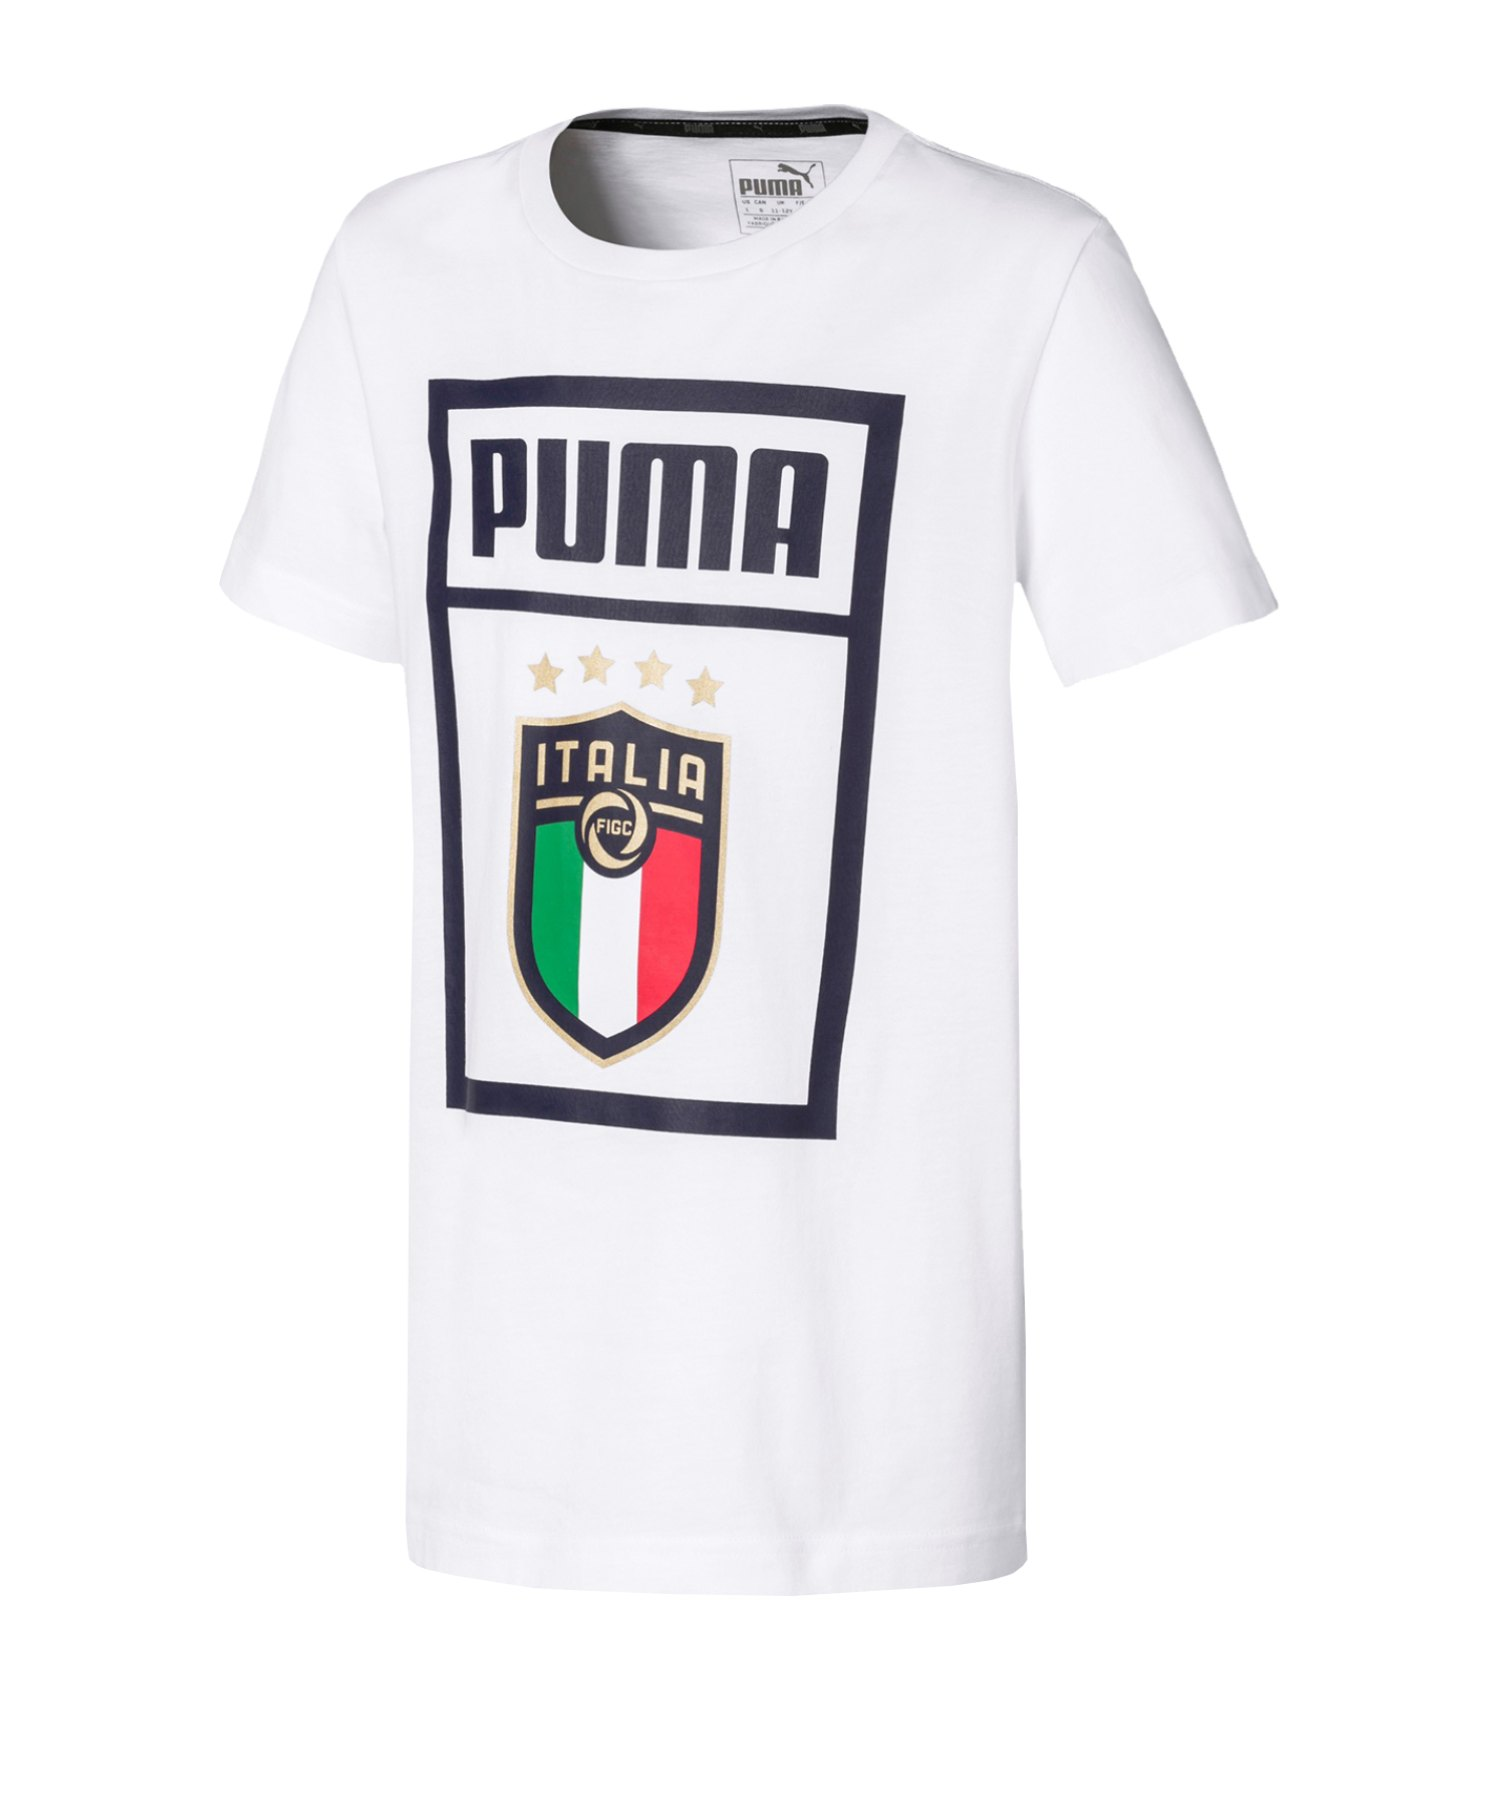 PUMA Italien DNA T-Shirt Kids Weiss F17 - weiss